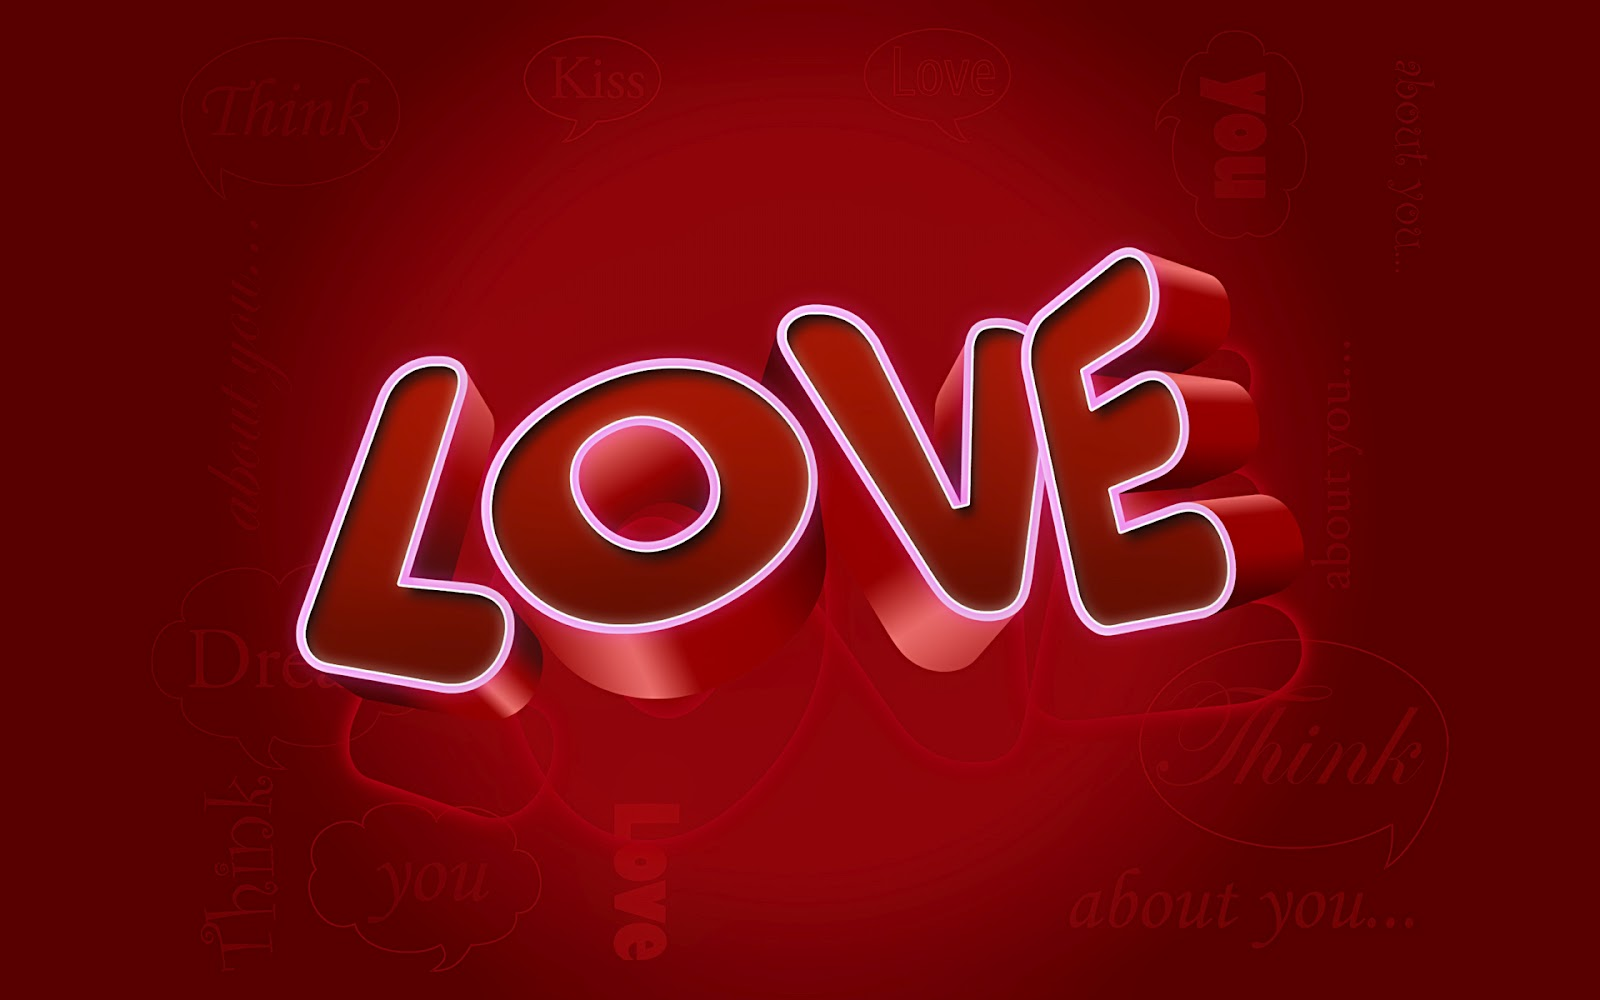 Love Wallpaper Msg : Wallpaper Desk : I love you wallpaper, i love you ...